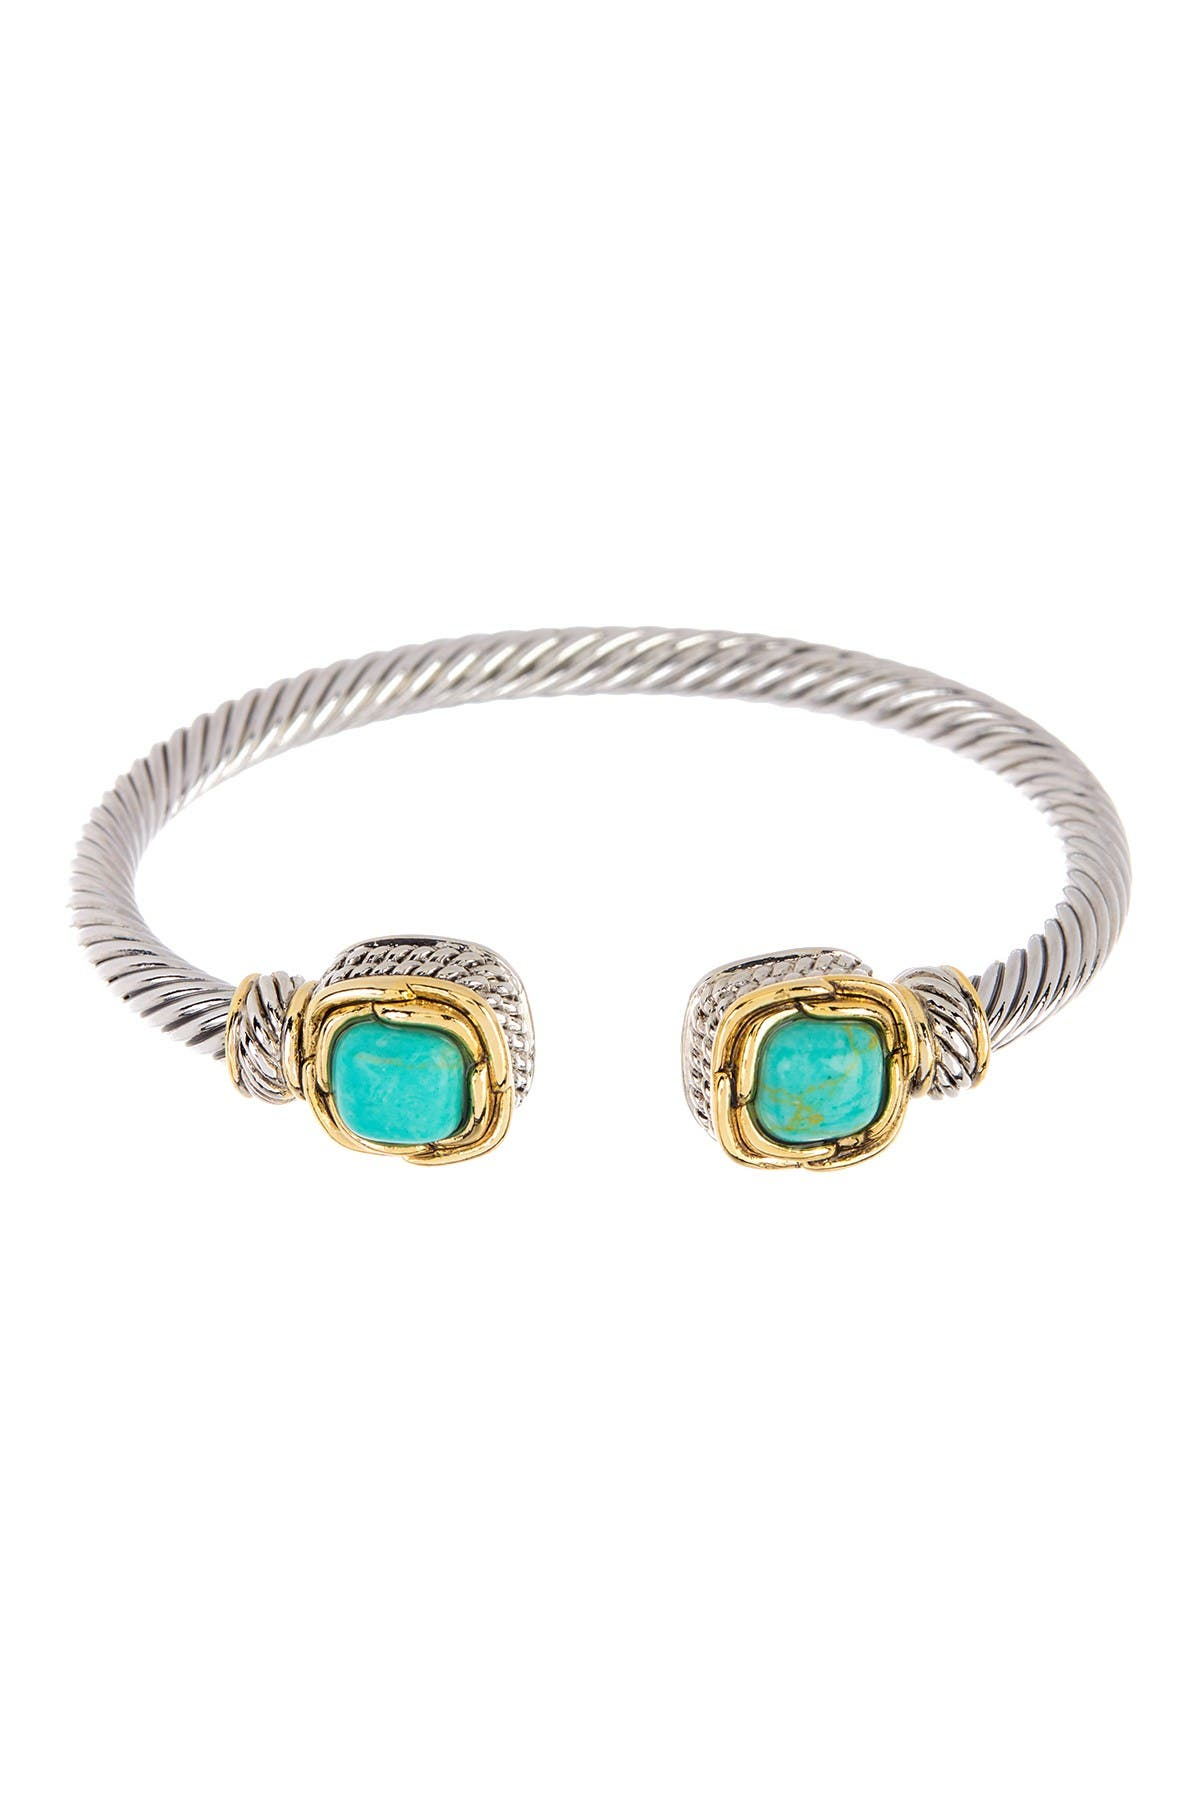 Image of Meshmerise Twisted Cable Turquoise Ends Cuff Bracelet